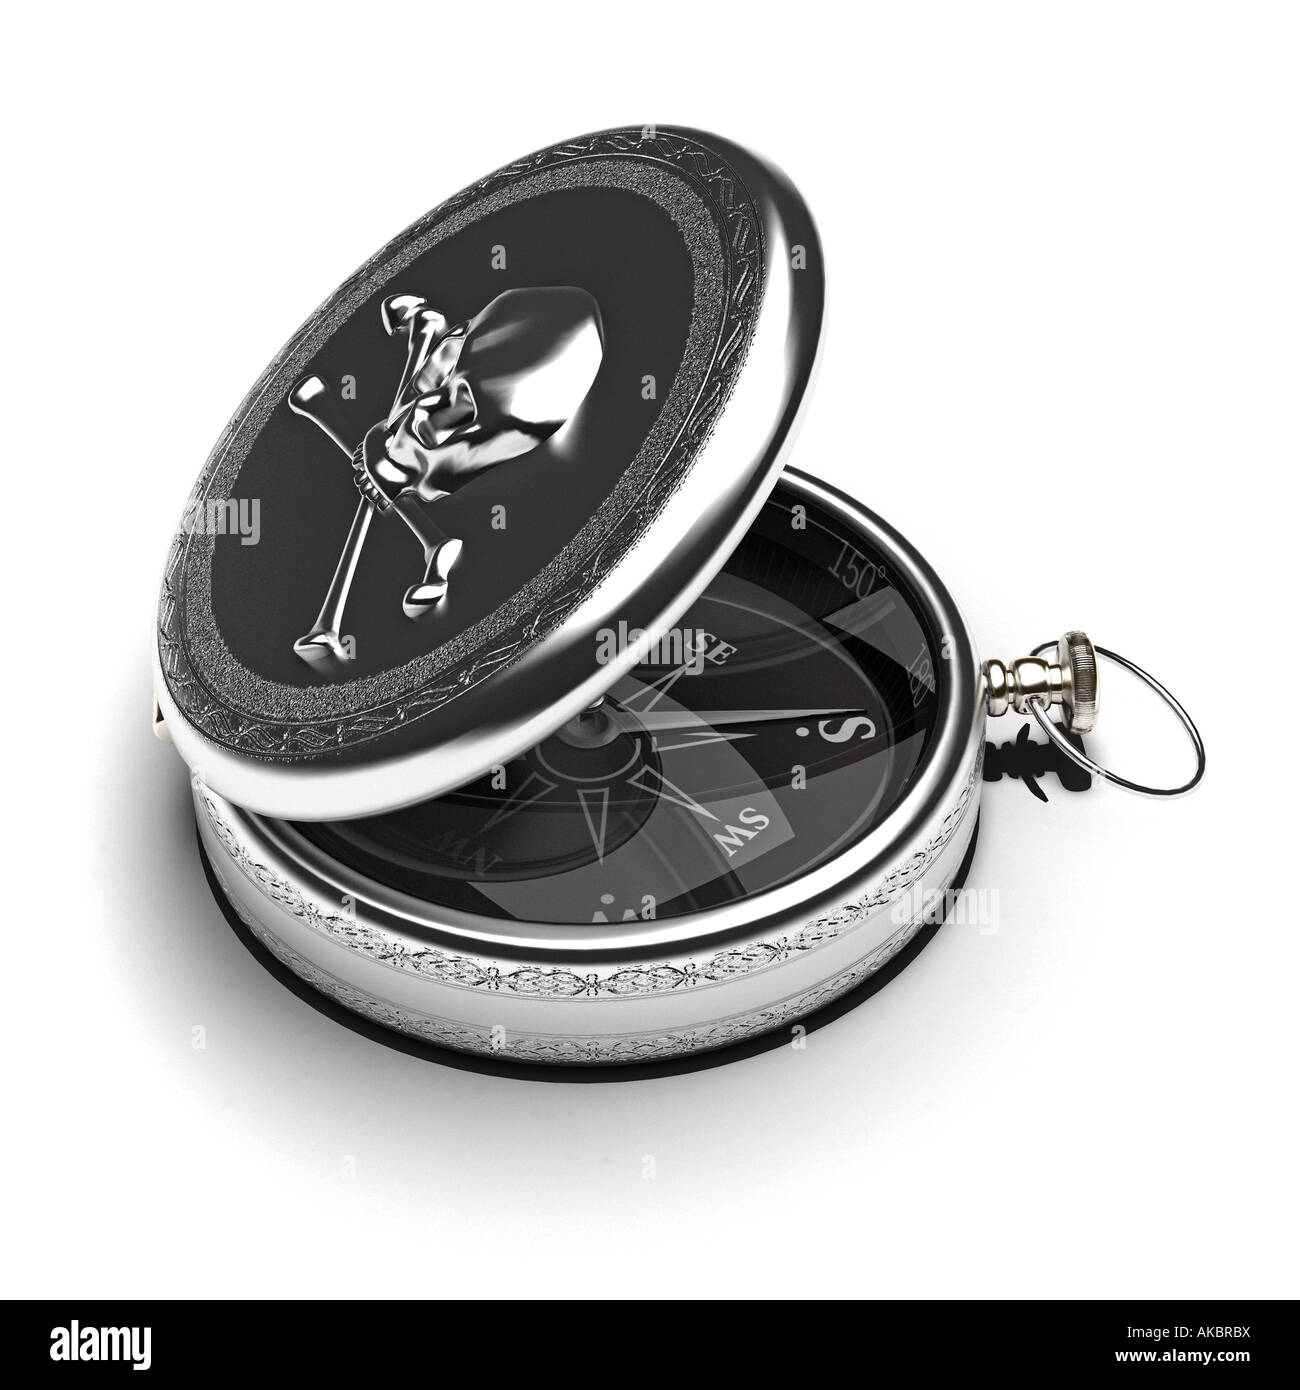 A beautiful silver Pirate's compass. - Stock Image